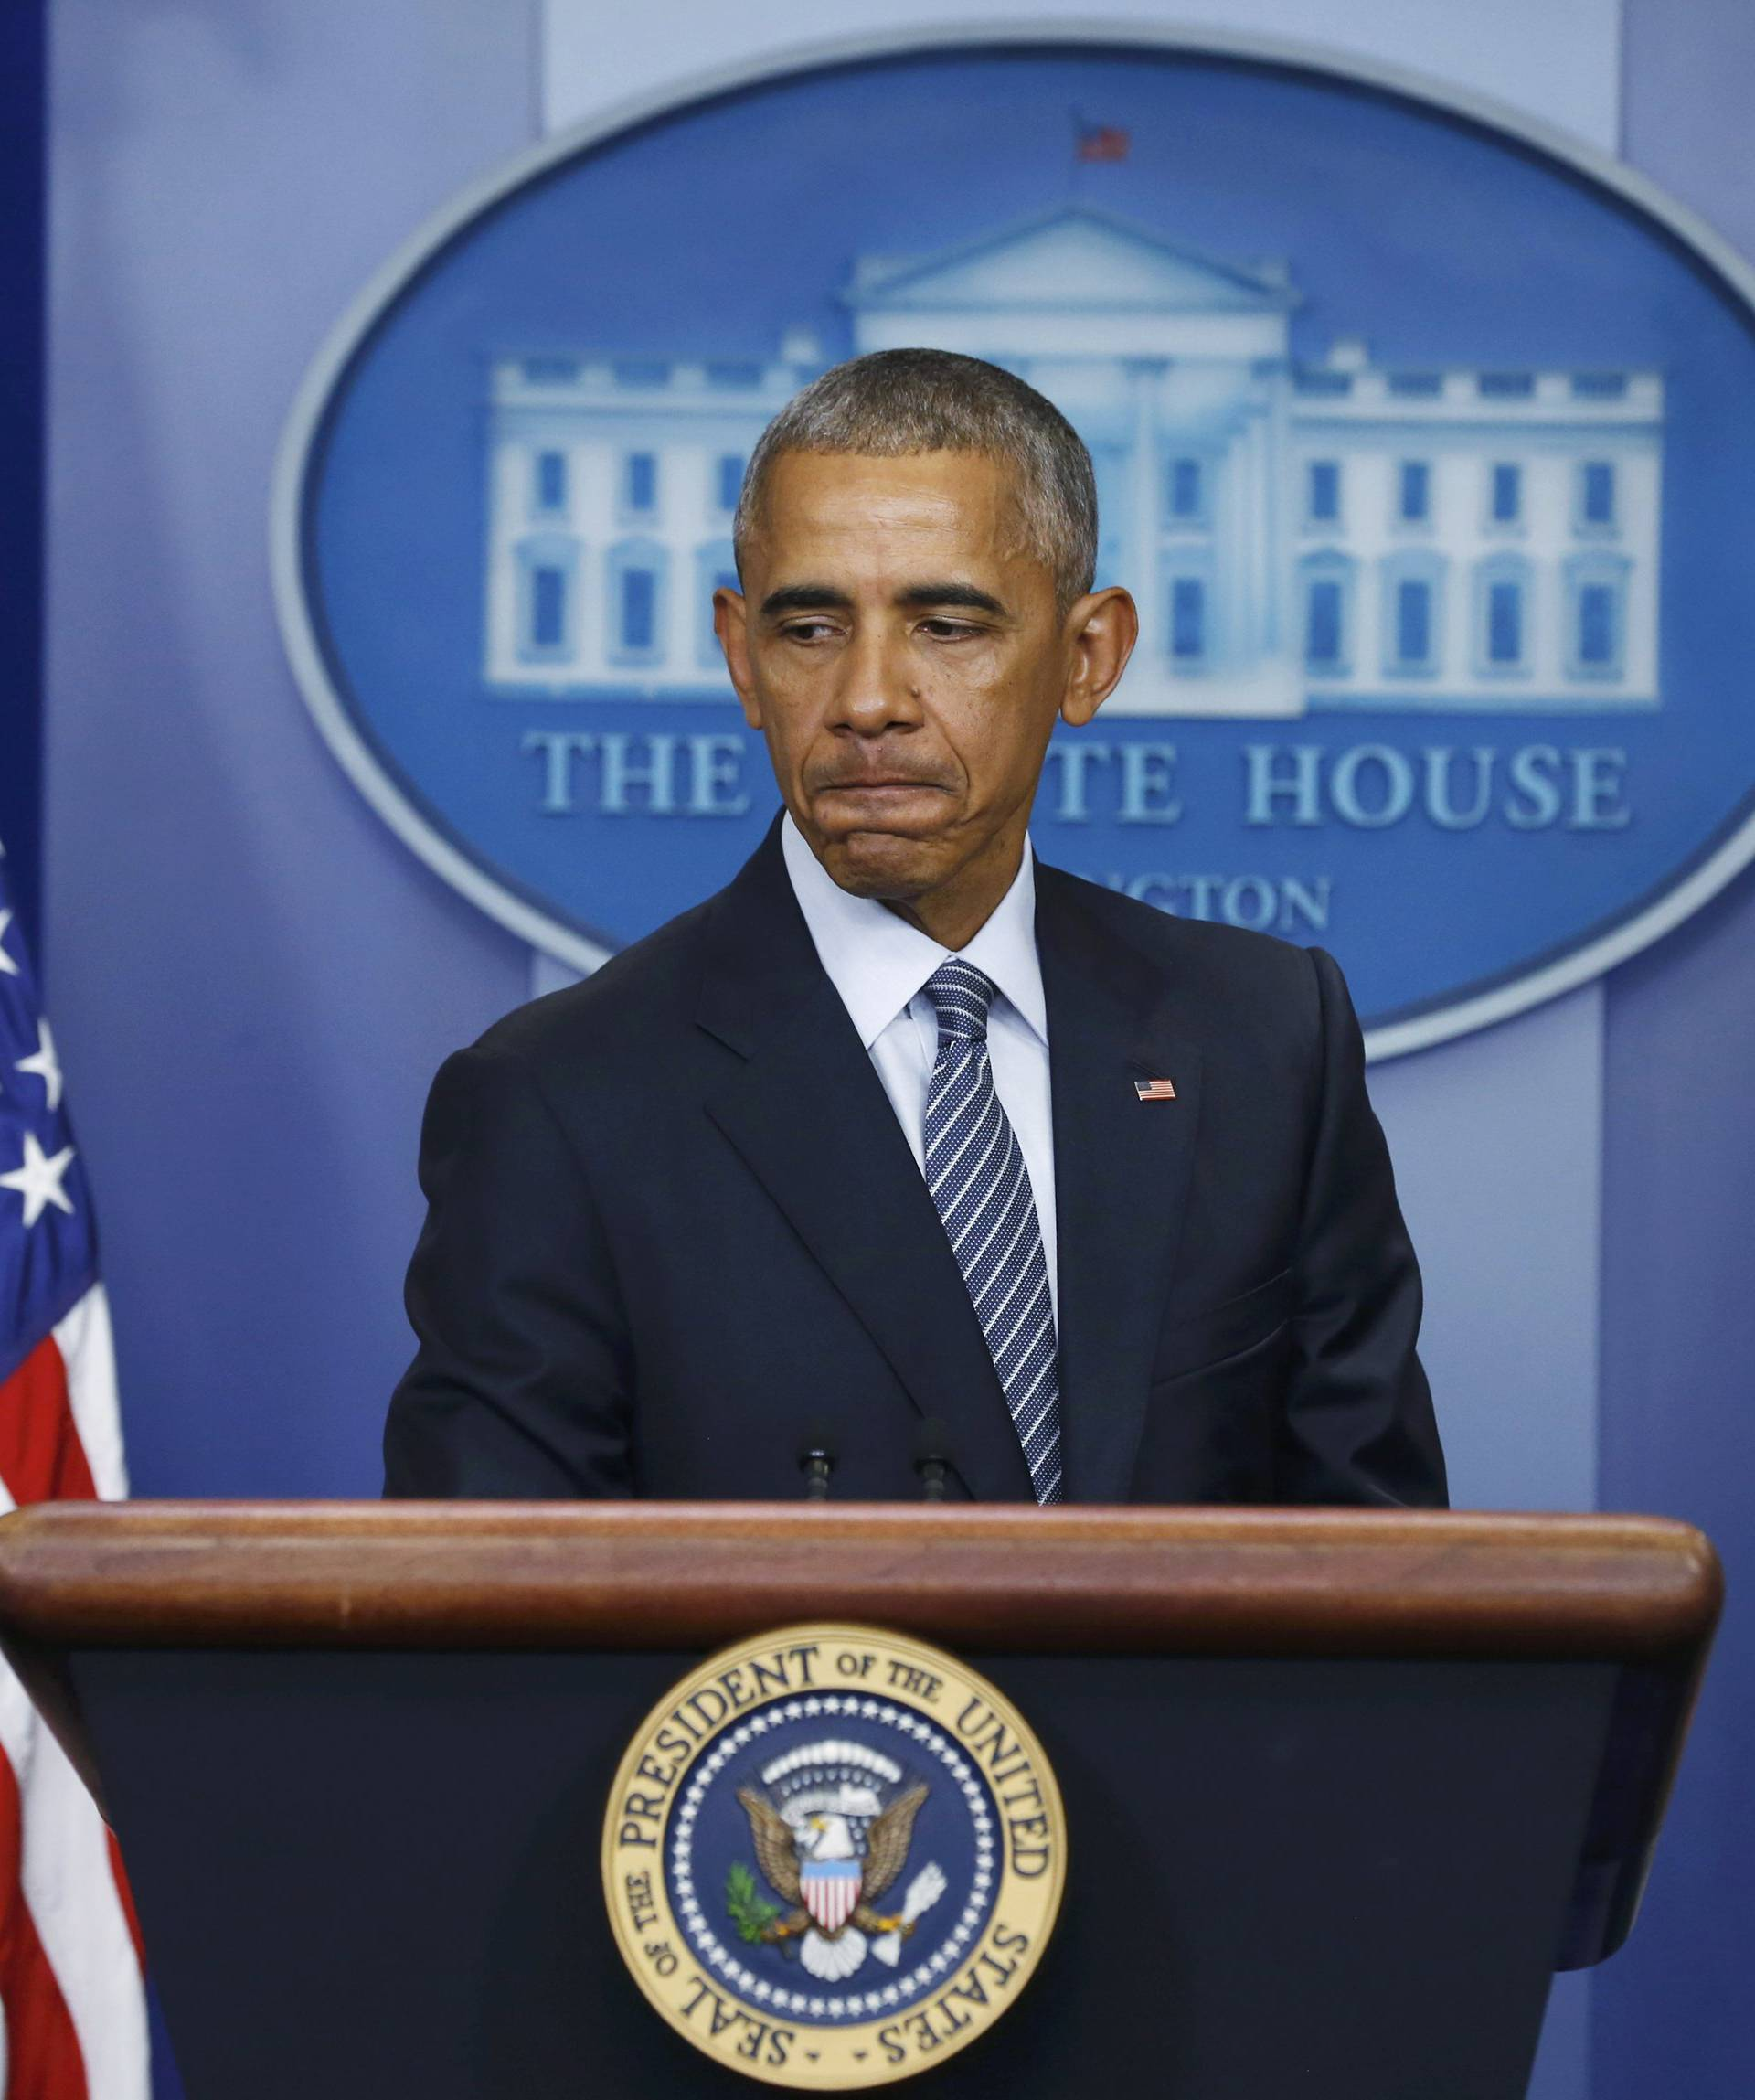 U.S.  President Obama pauses during news conference at the White House in Washington